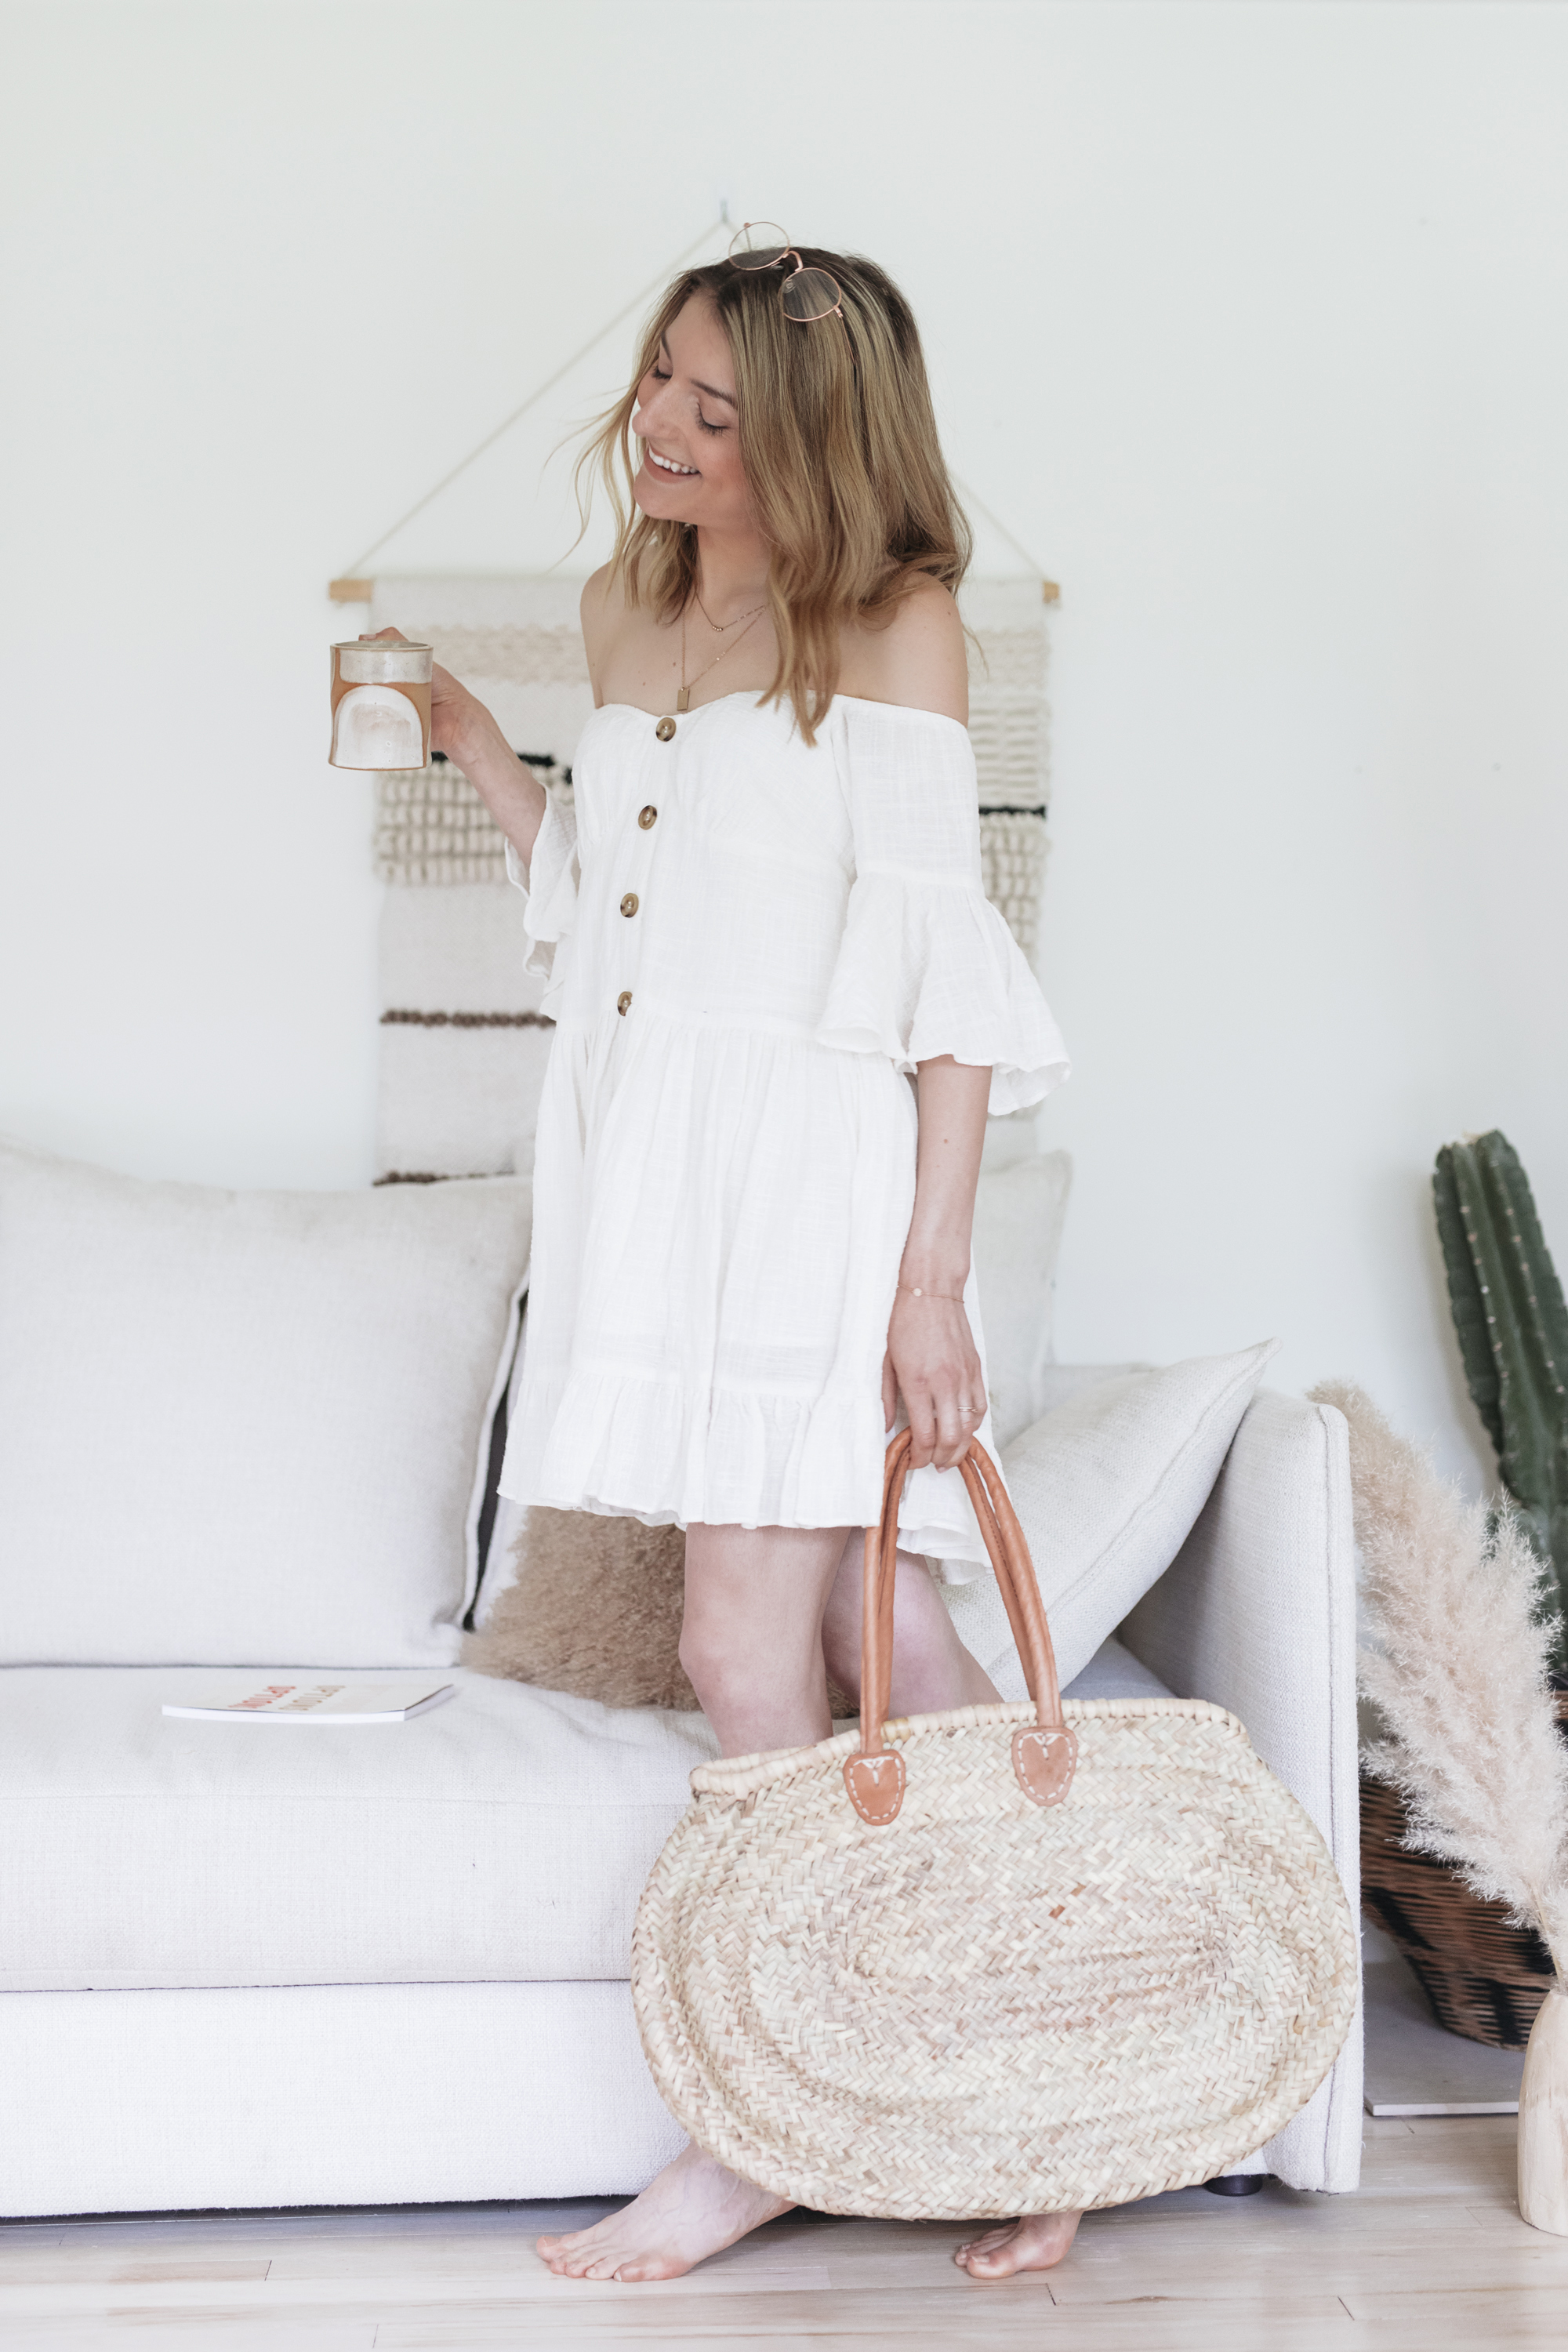 Wake up early and take yourself on dates to get the me-time you crave, says creative blogger and Luca Creative Co CEO Emily r hess